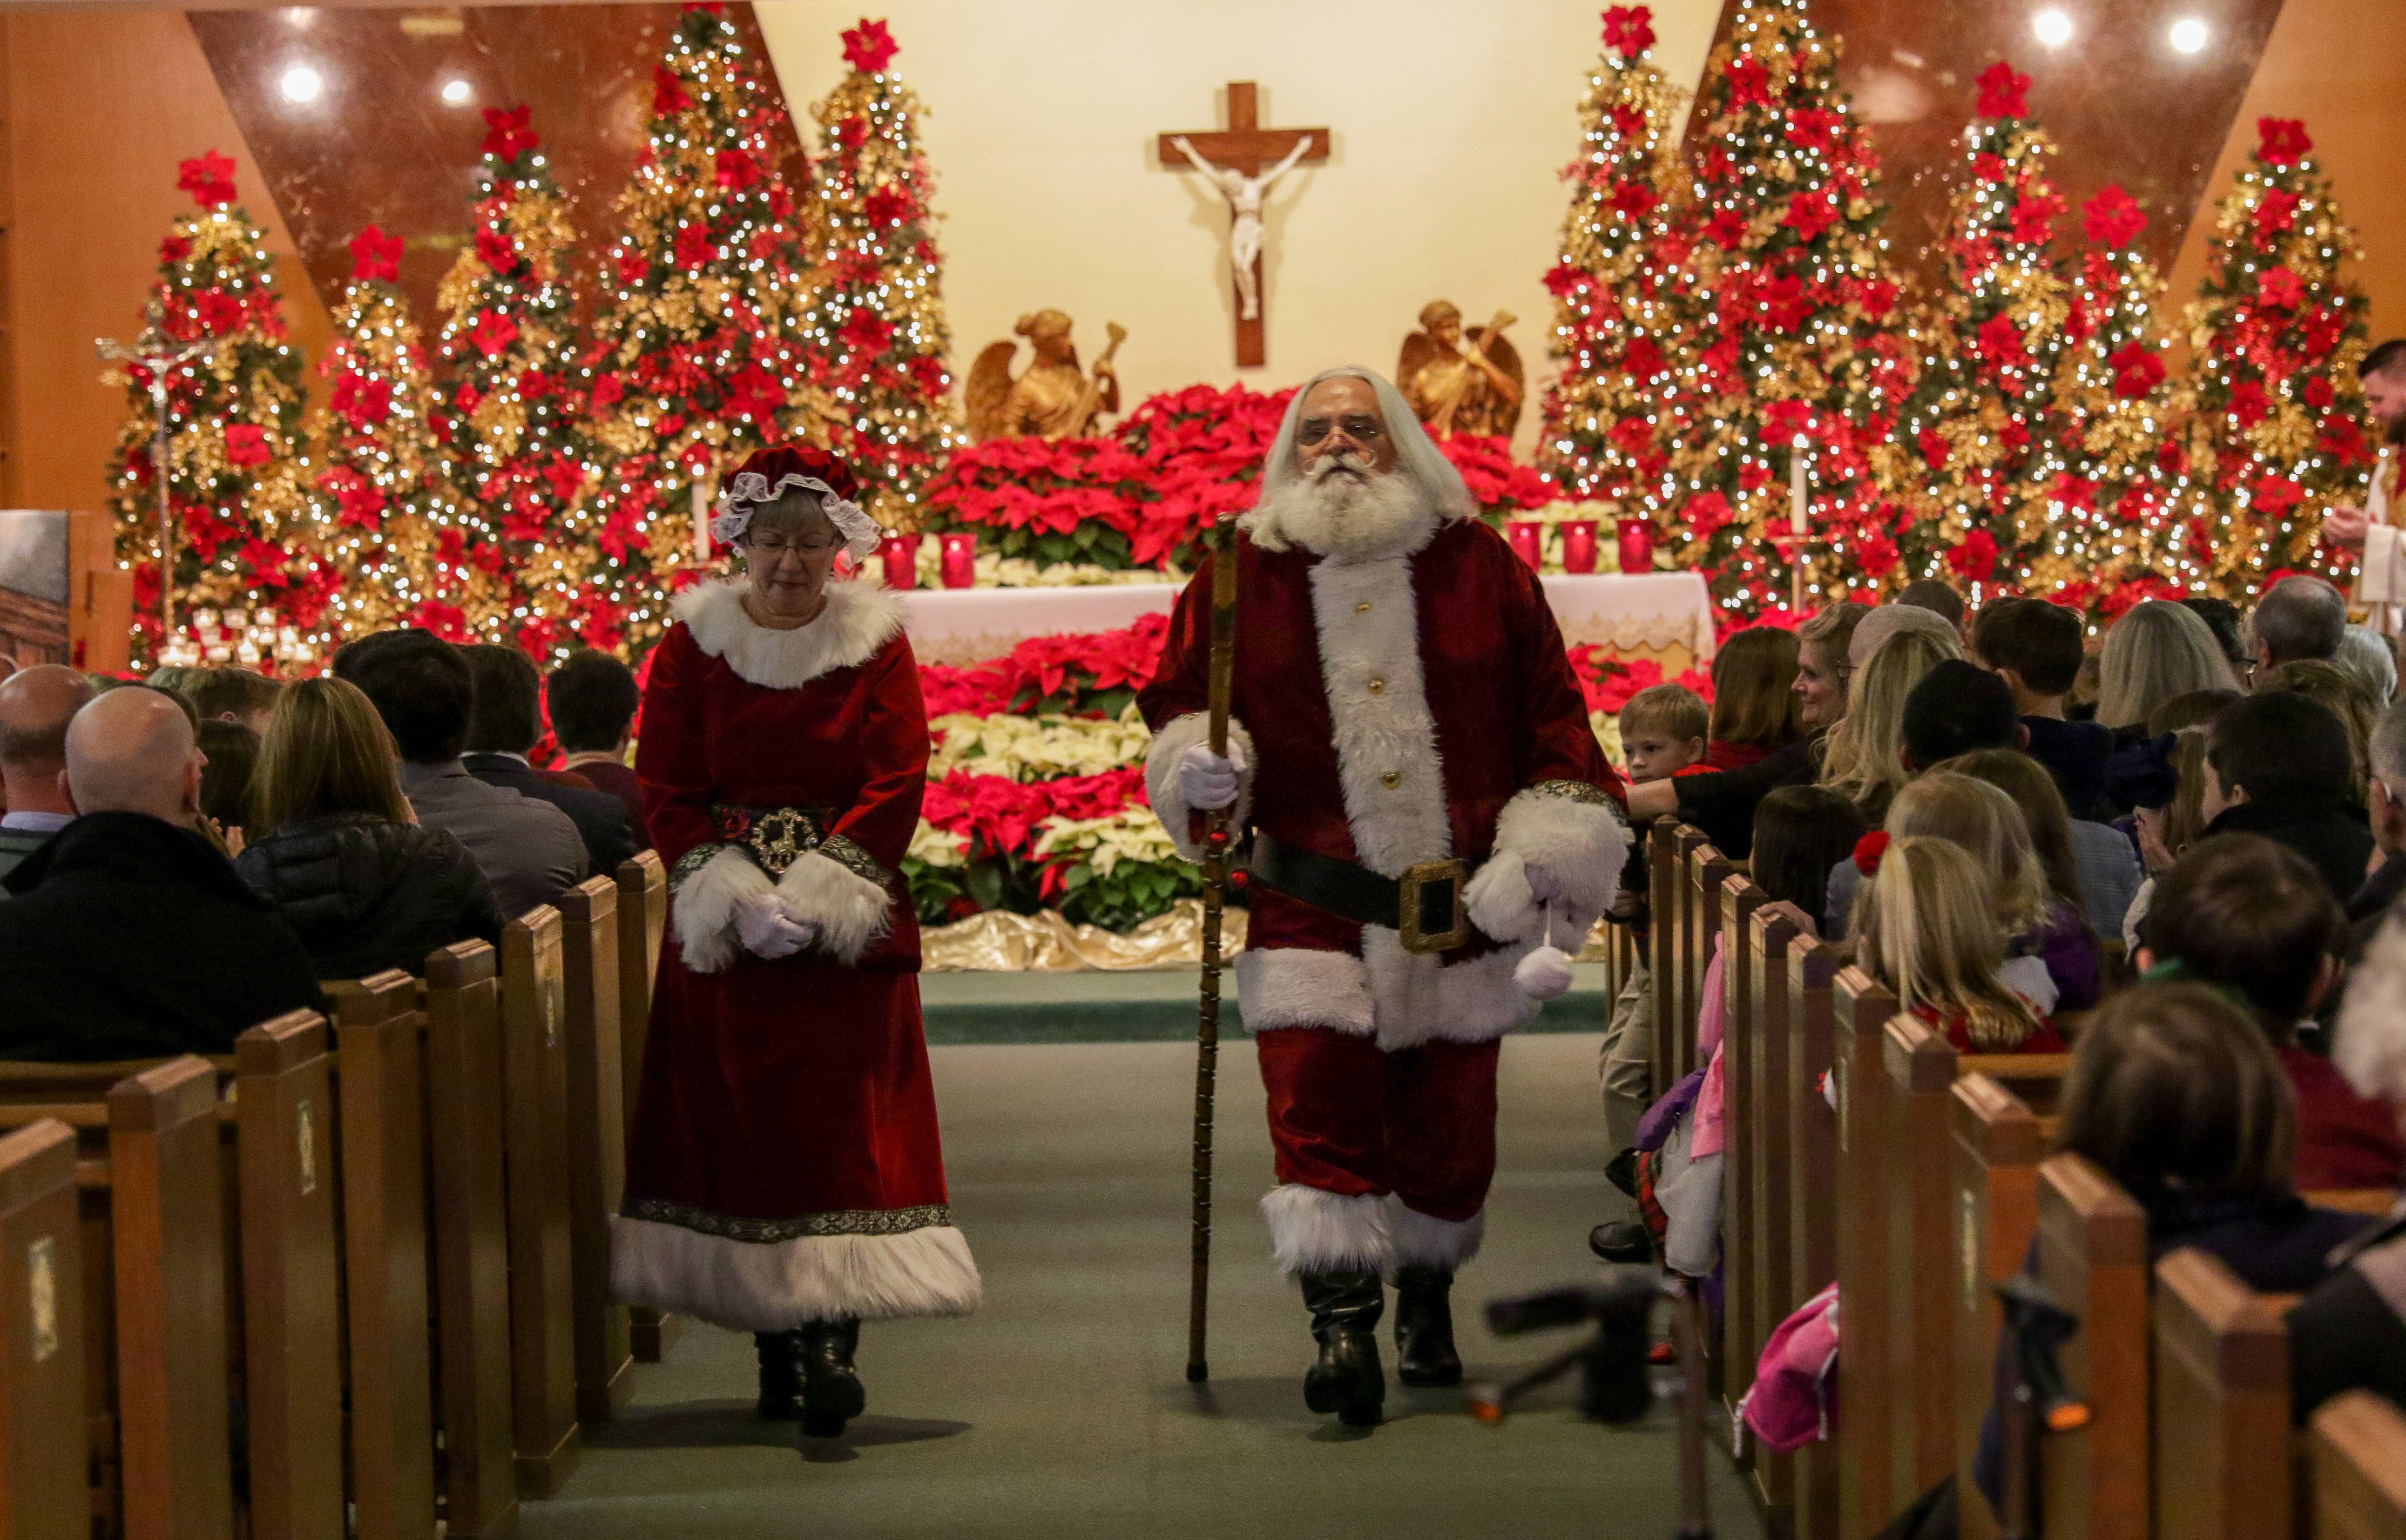 Bob and Carol Hildreth, of Elgin are Santa Claus ands Mrs. Claus during the Children's Christmas Mass at Immaculate Conception Church in Elmhurst on Sunday.